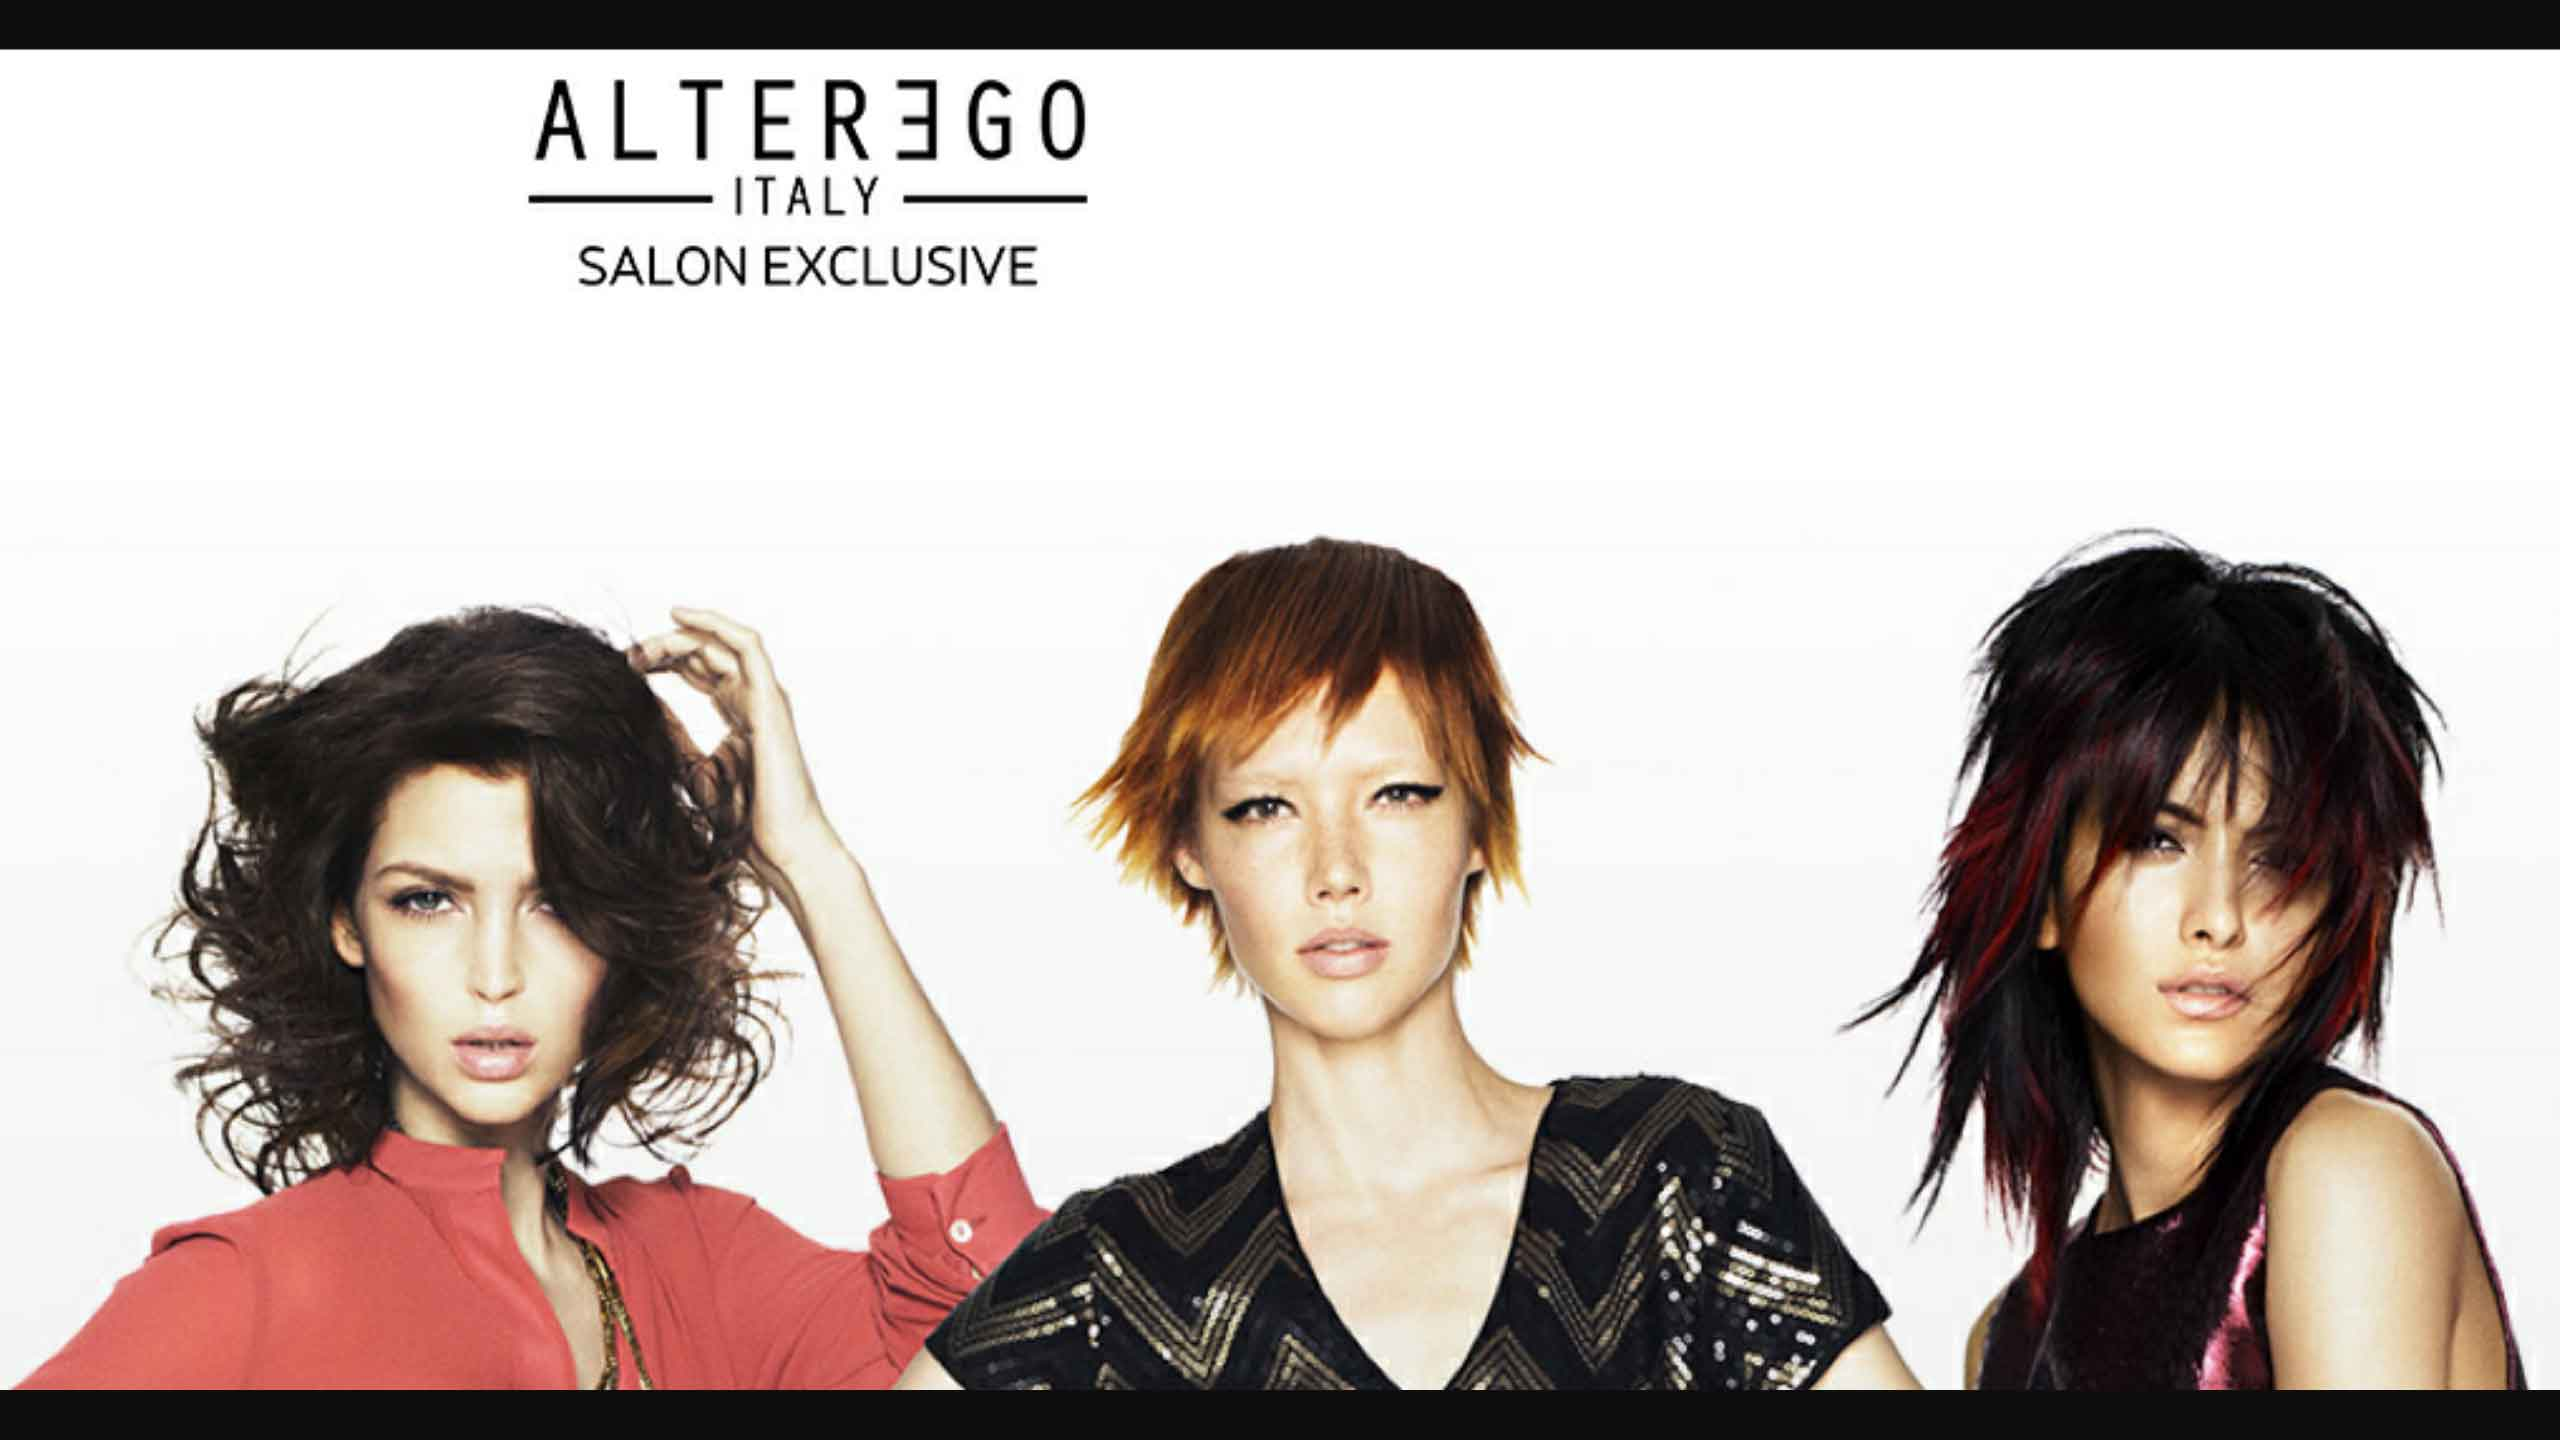 Alter Ego Italy Color Photo Fluff Color Makeup And Blowdry Bar